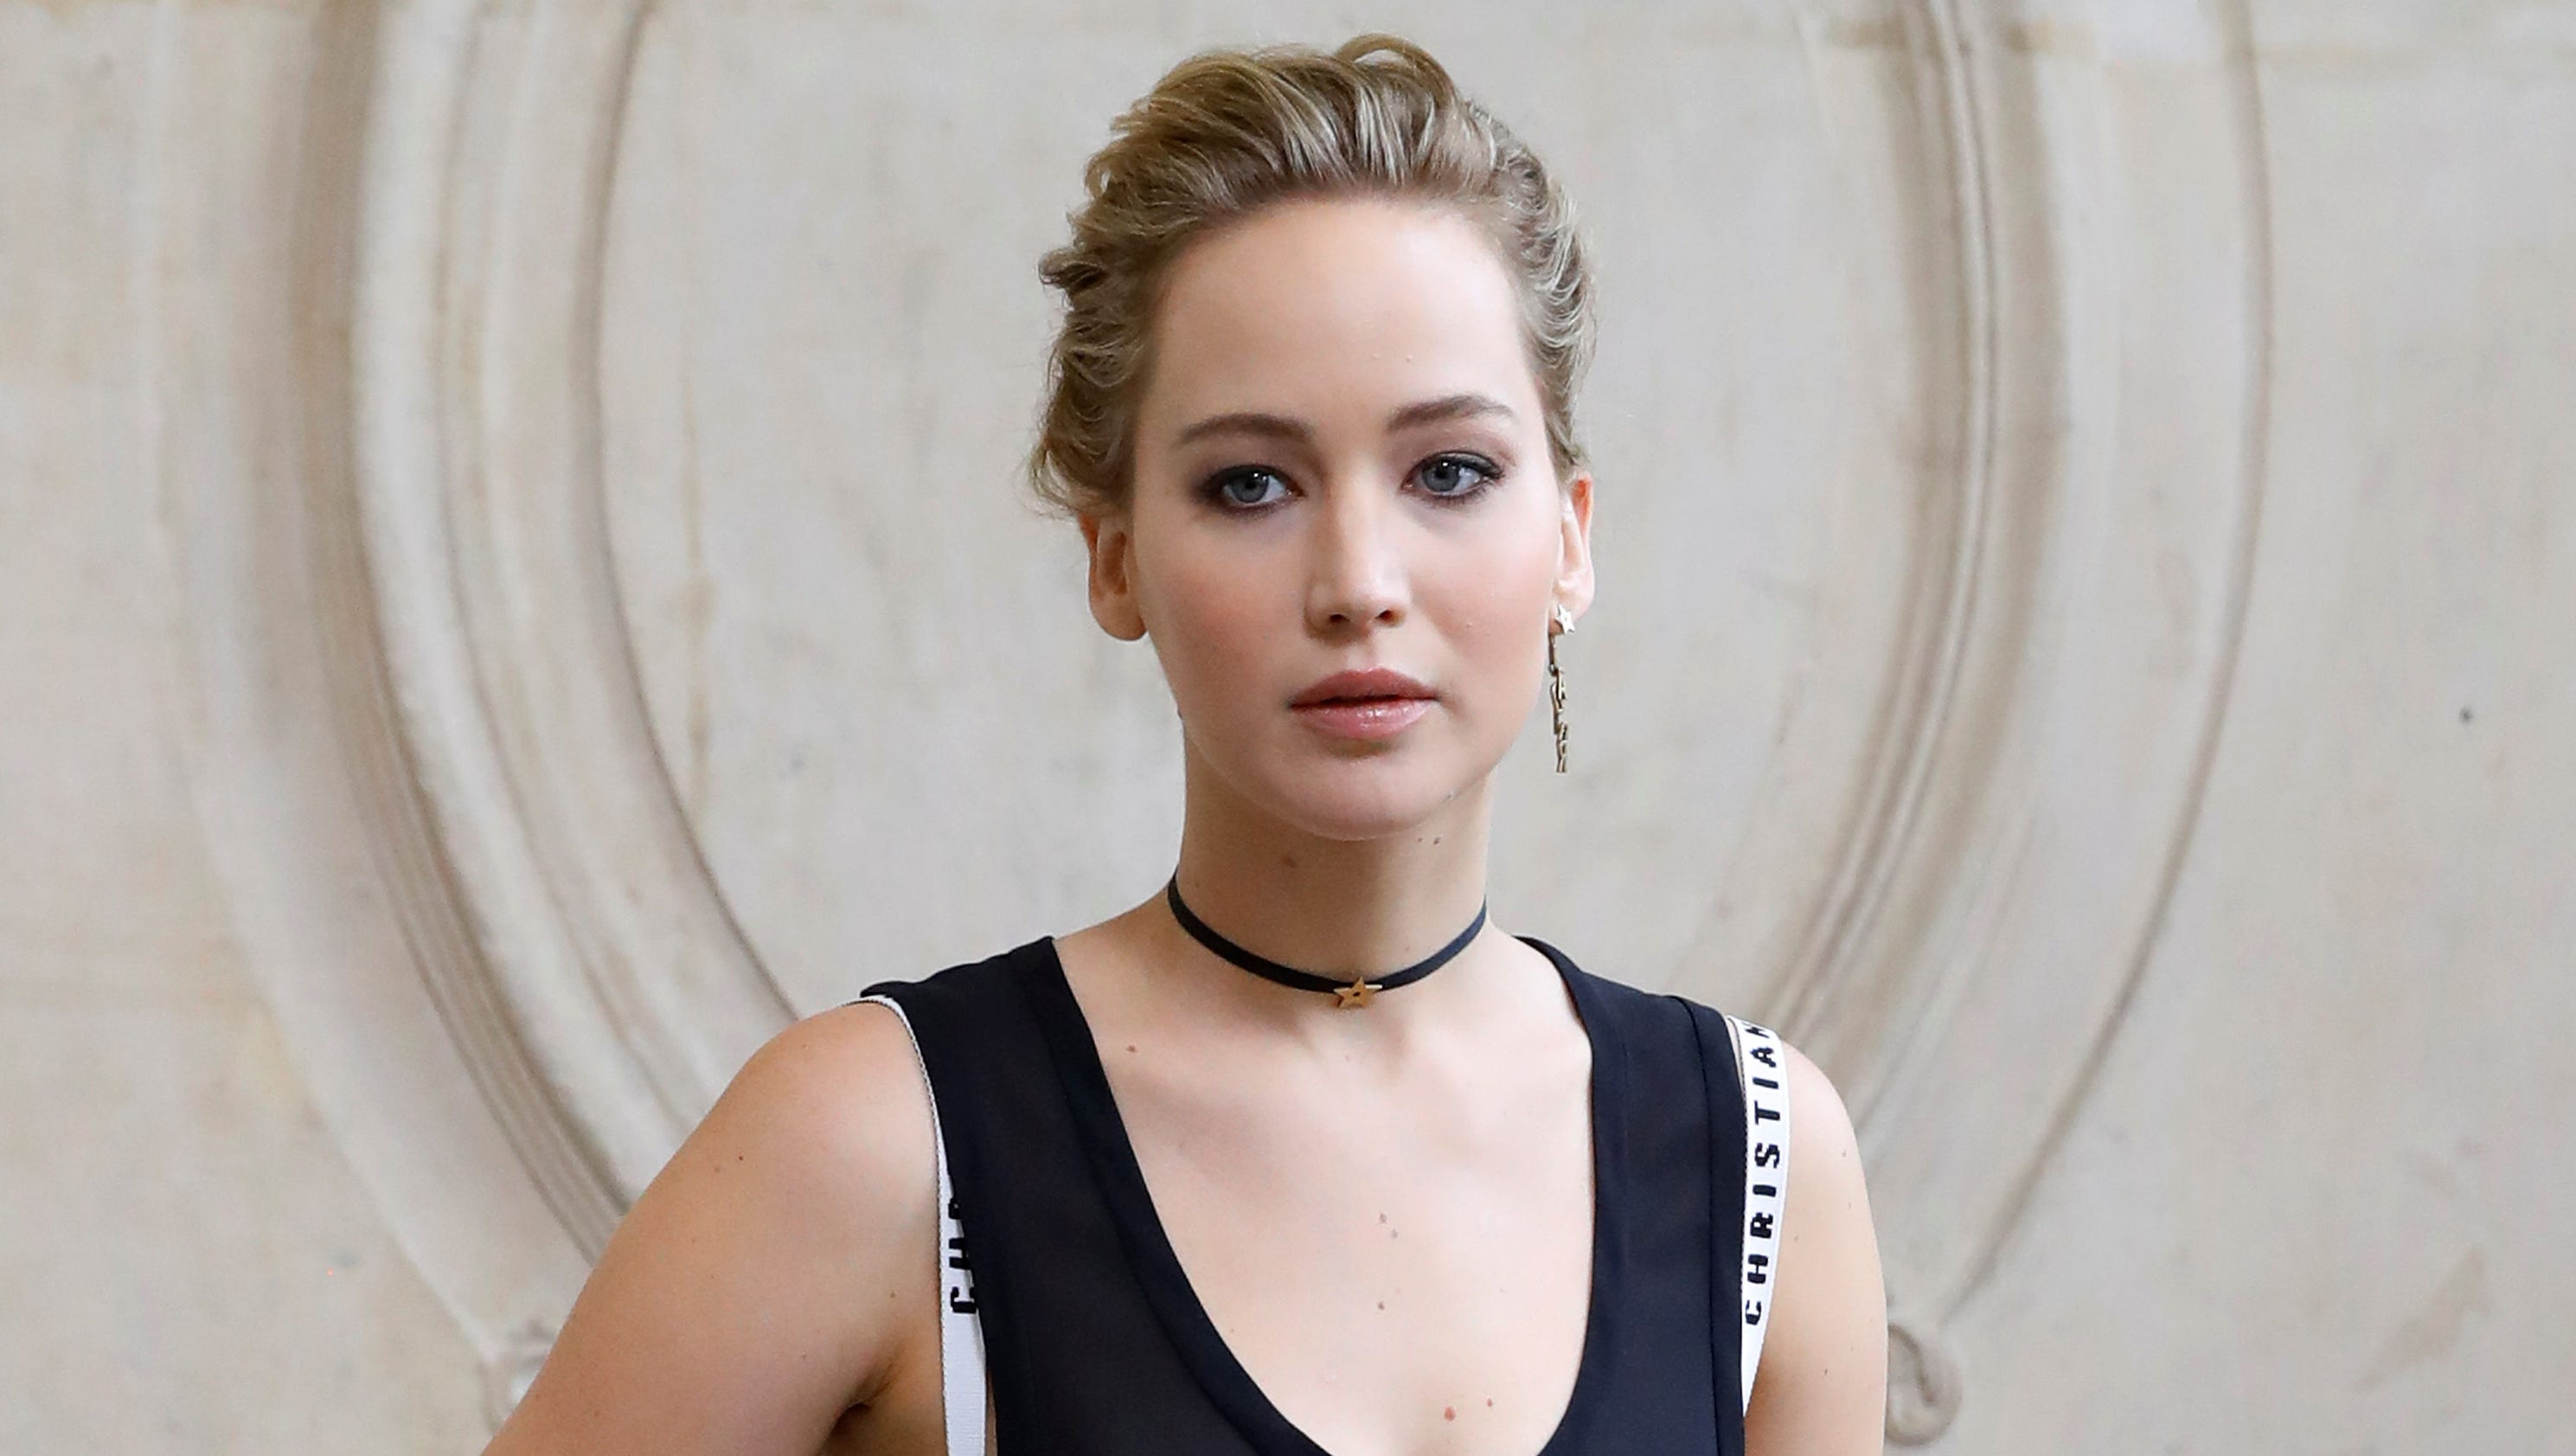 Dc5m United States Events In English Created At 2016 10 29 0008 1997 Chevrolet Blazer Antilock Brake Circuits Wiring Diagram A Pennsylvania Man Was Sentenced To 18 Months Prison For Hacking Into The Email And Online Accounts Of Jennifer Lawrence Other Female Celebrities